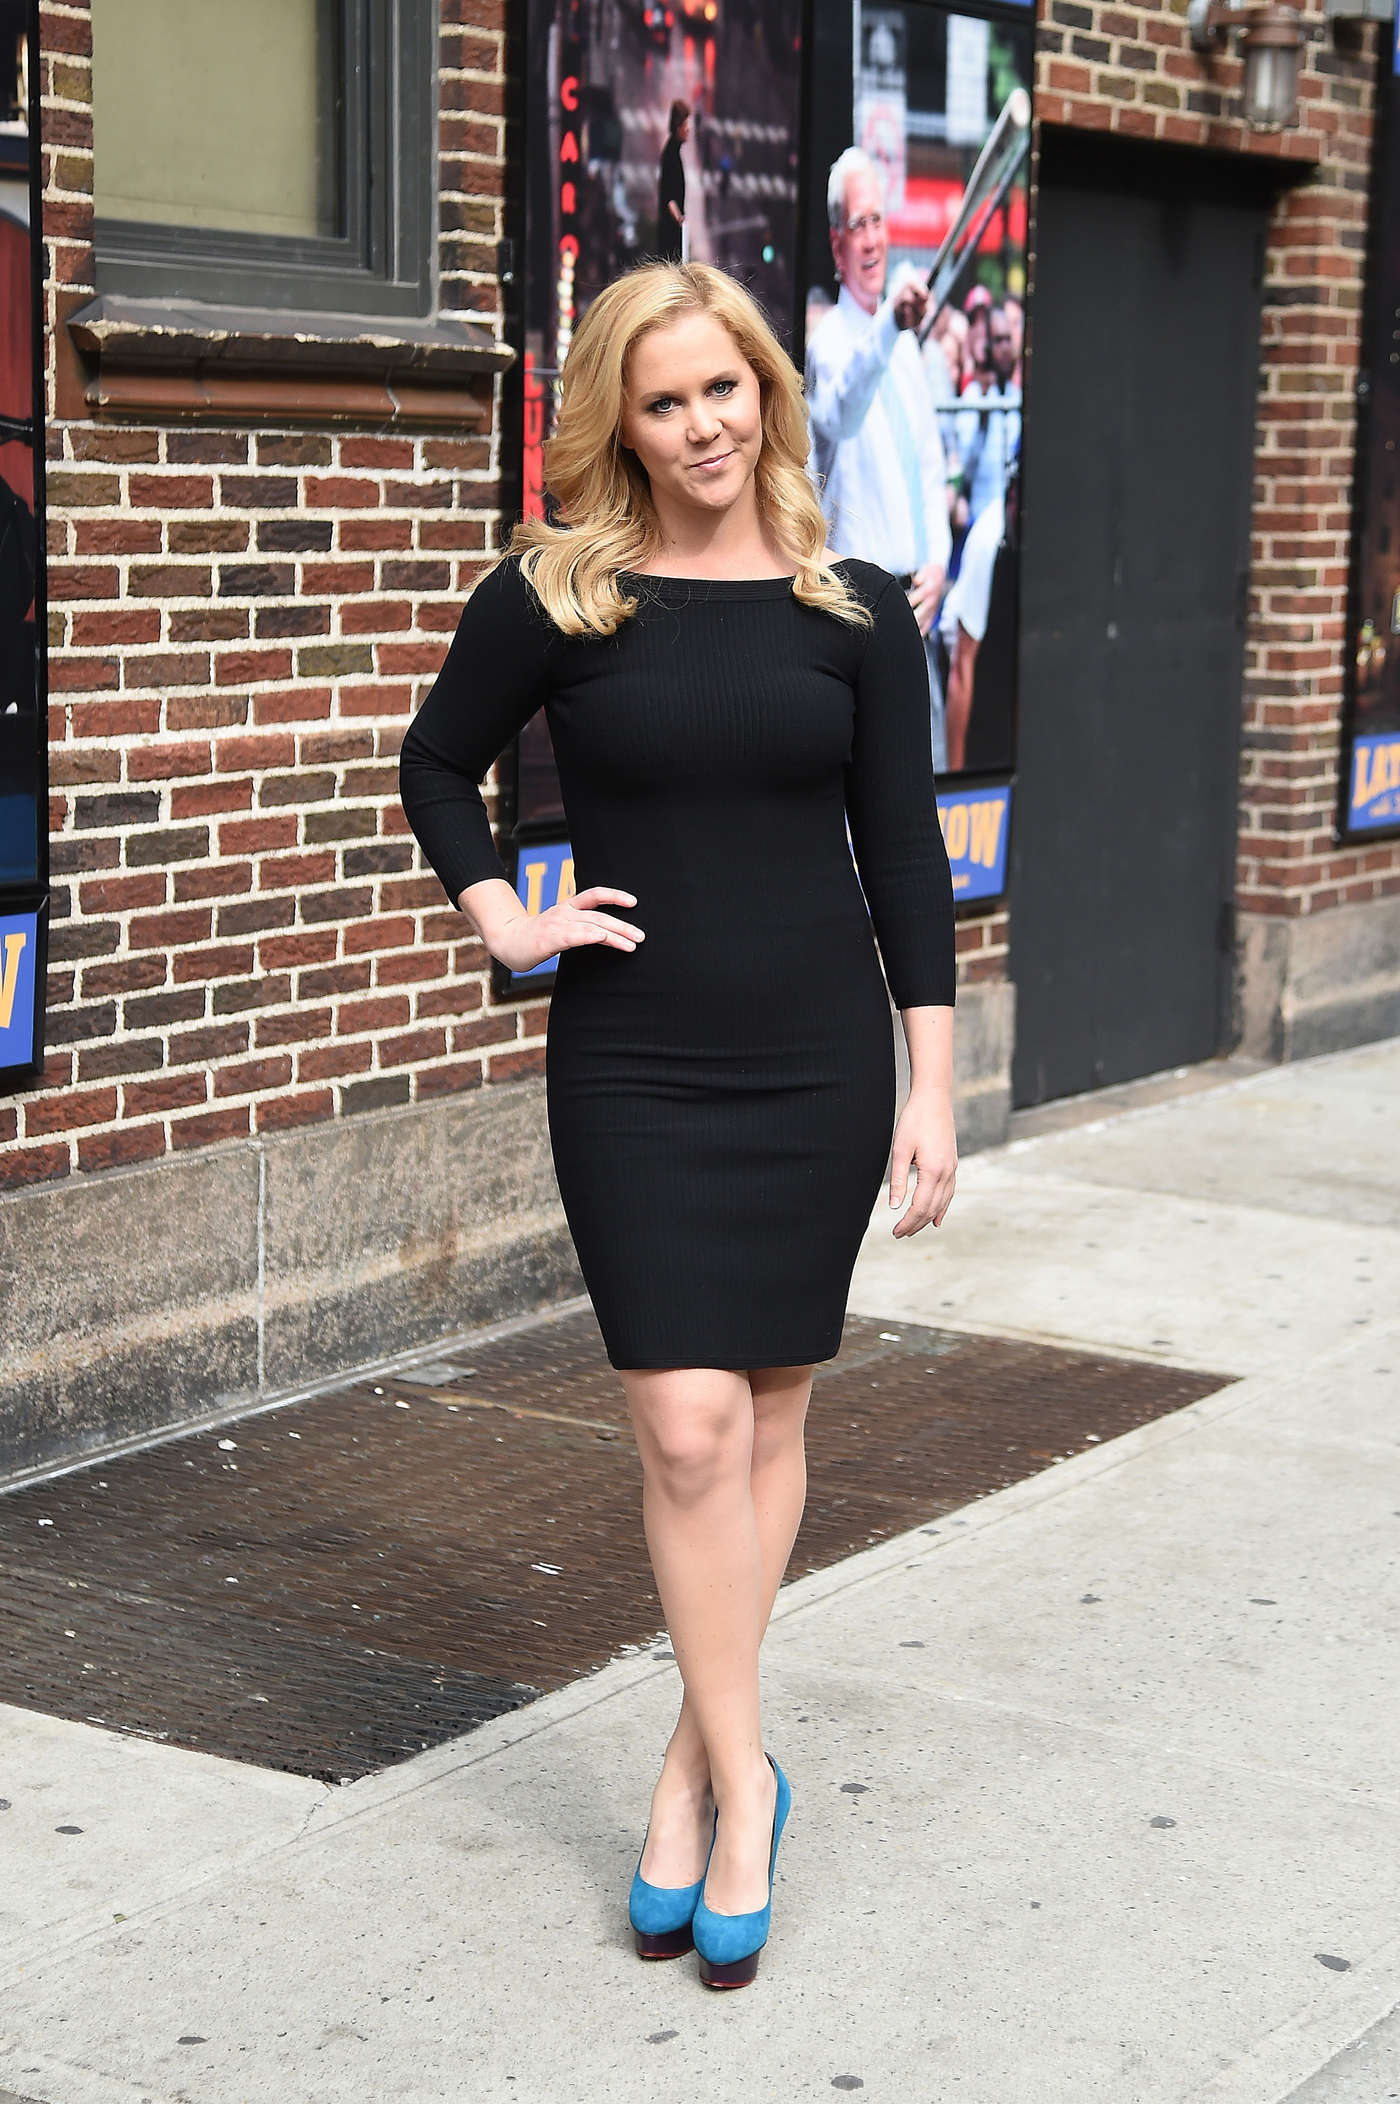 Amy Schumer at the David Letterman Show in New York City